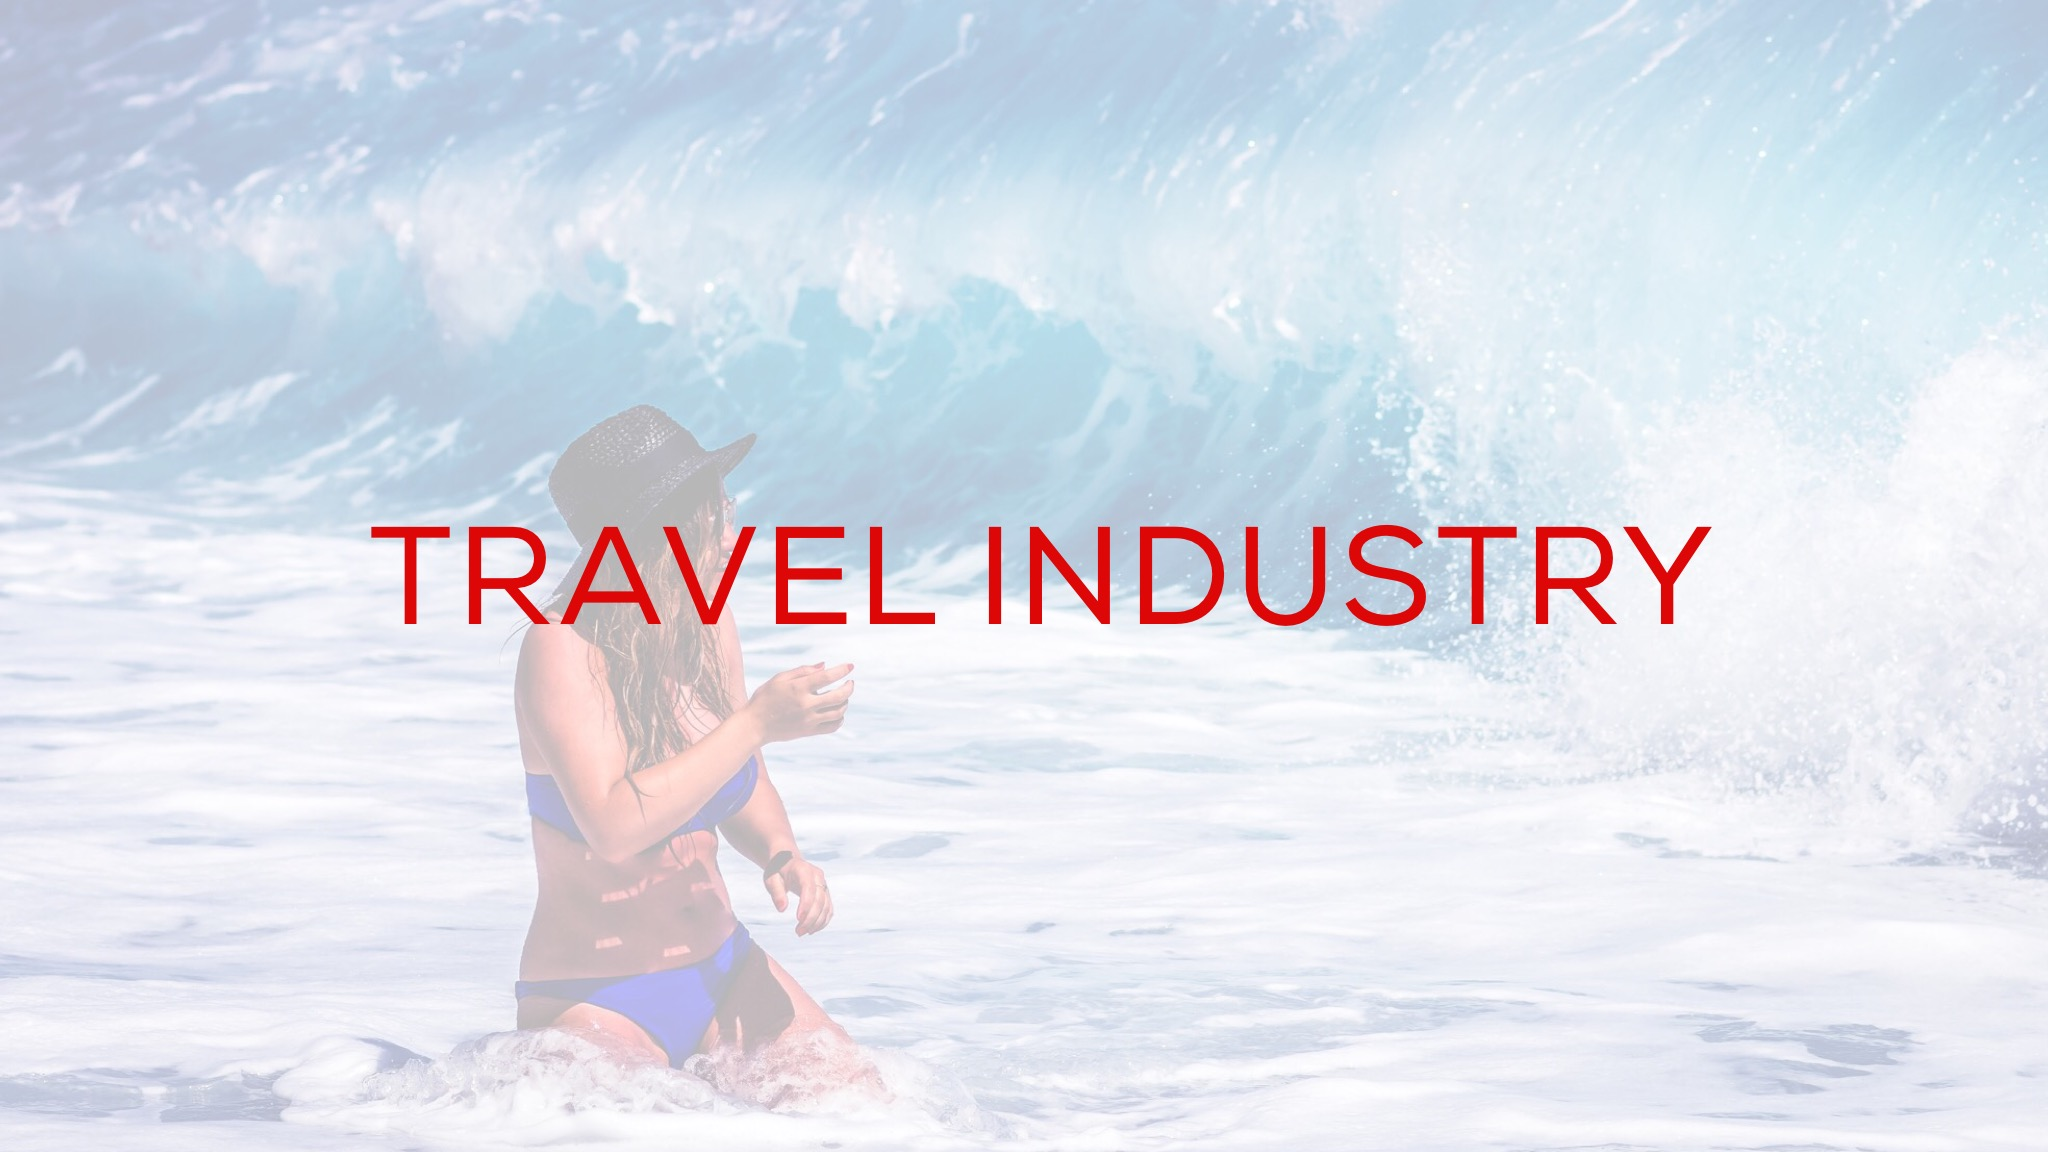 Squarespace for Travel Industry